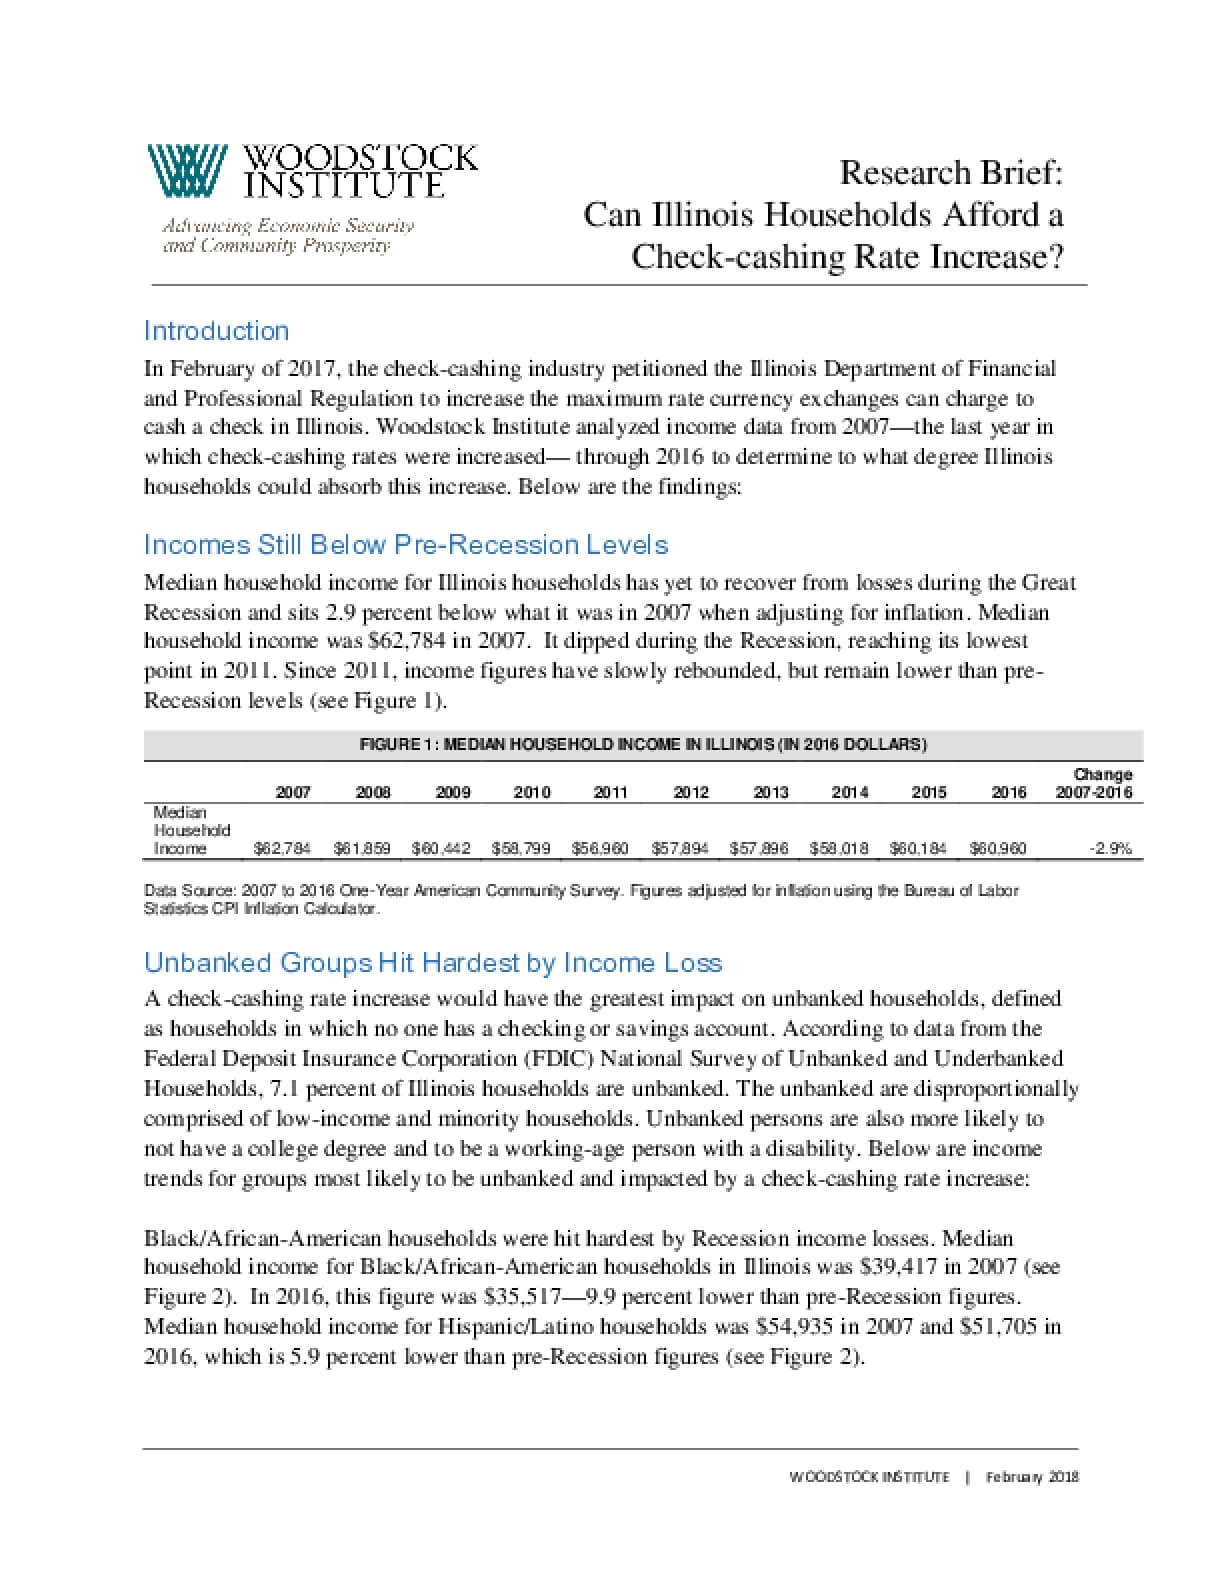 Research Brief:  Can Illinois Households Afford a Check-cashing Rate Increase?